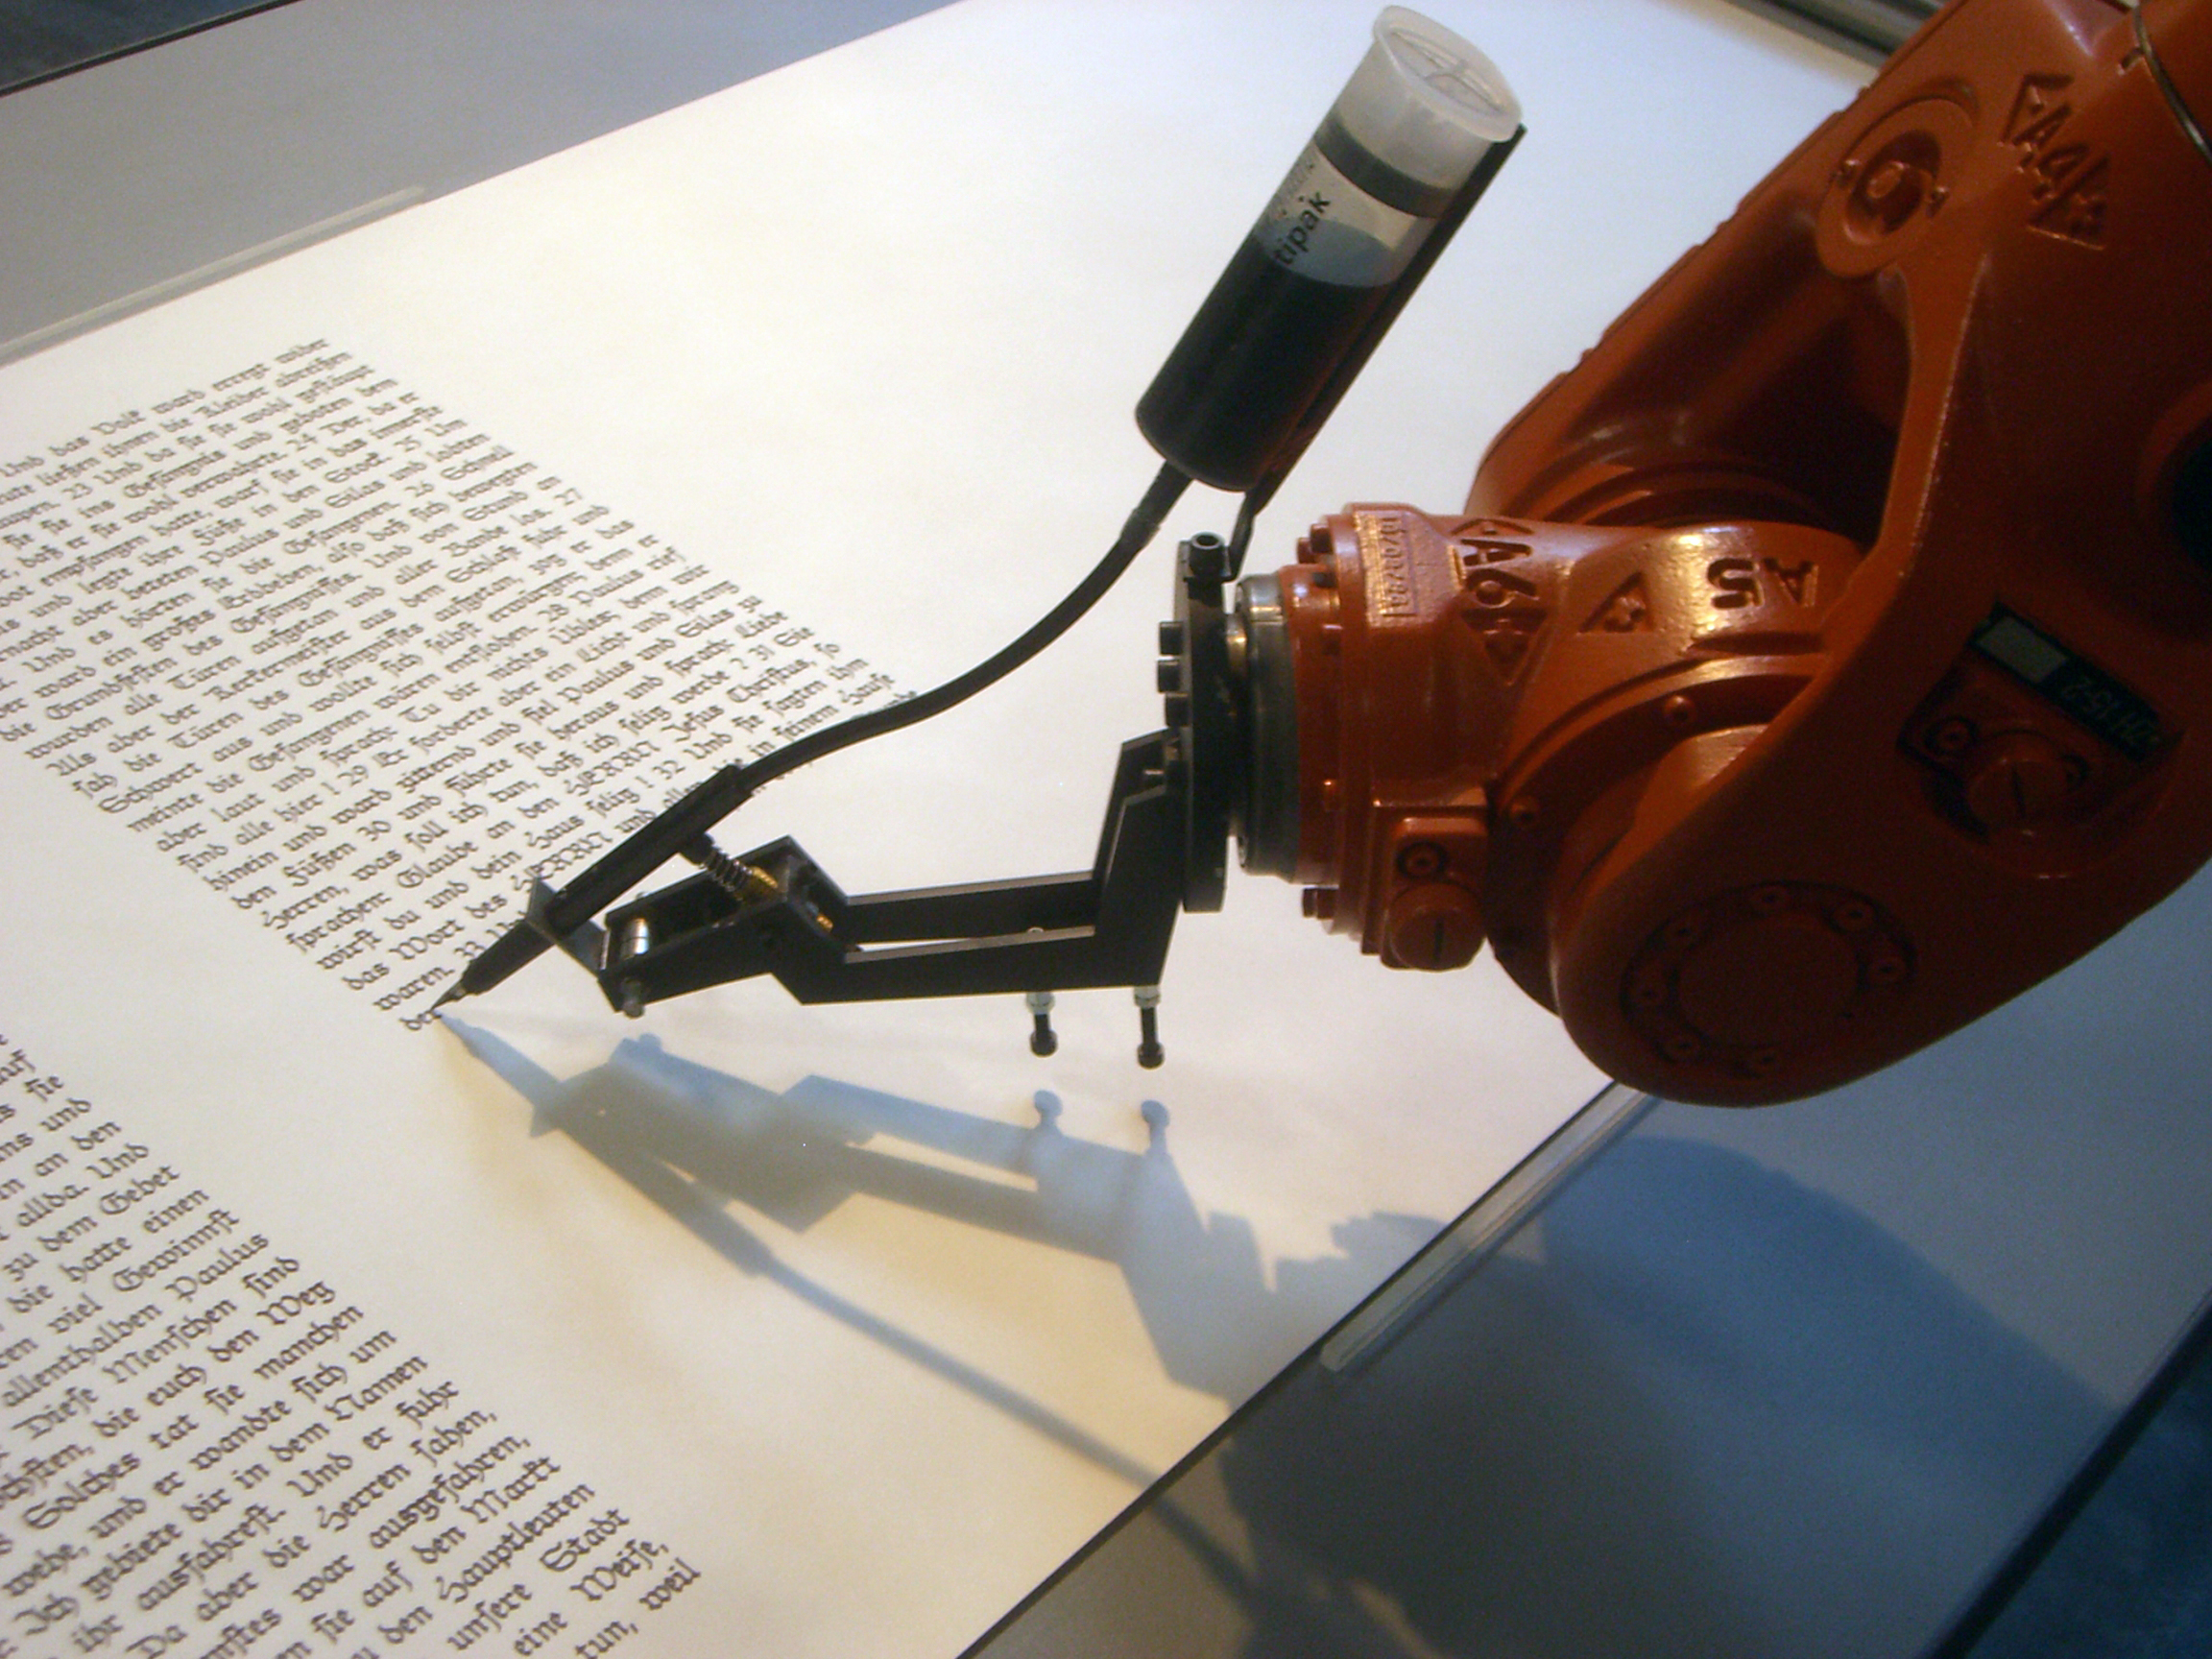 Bios robotlab writing robot.jpg